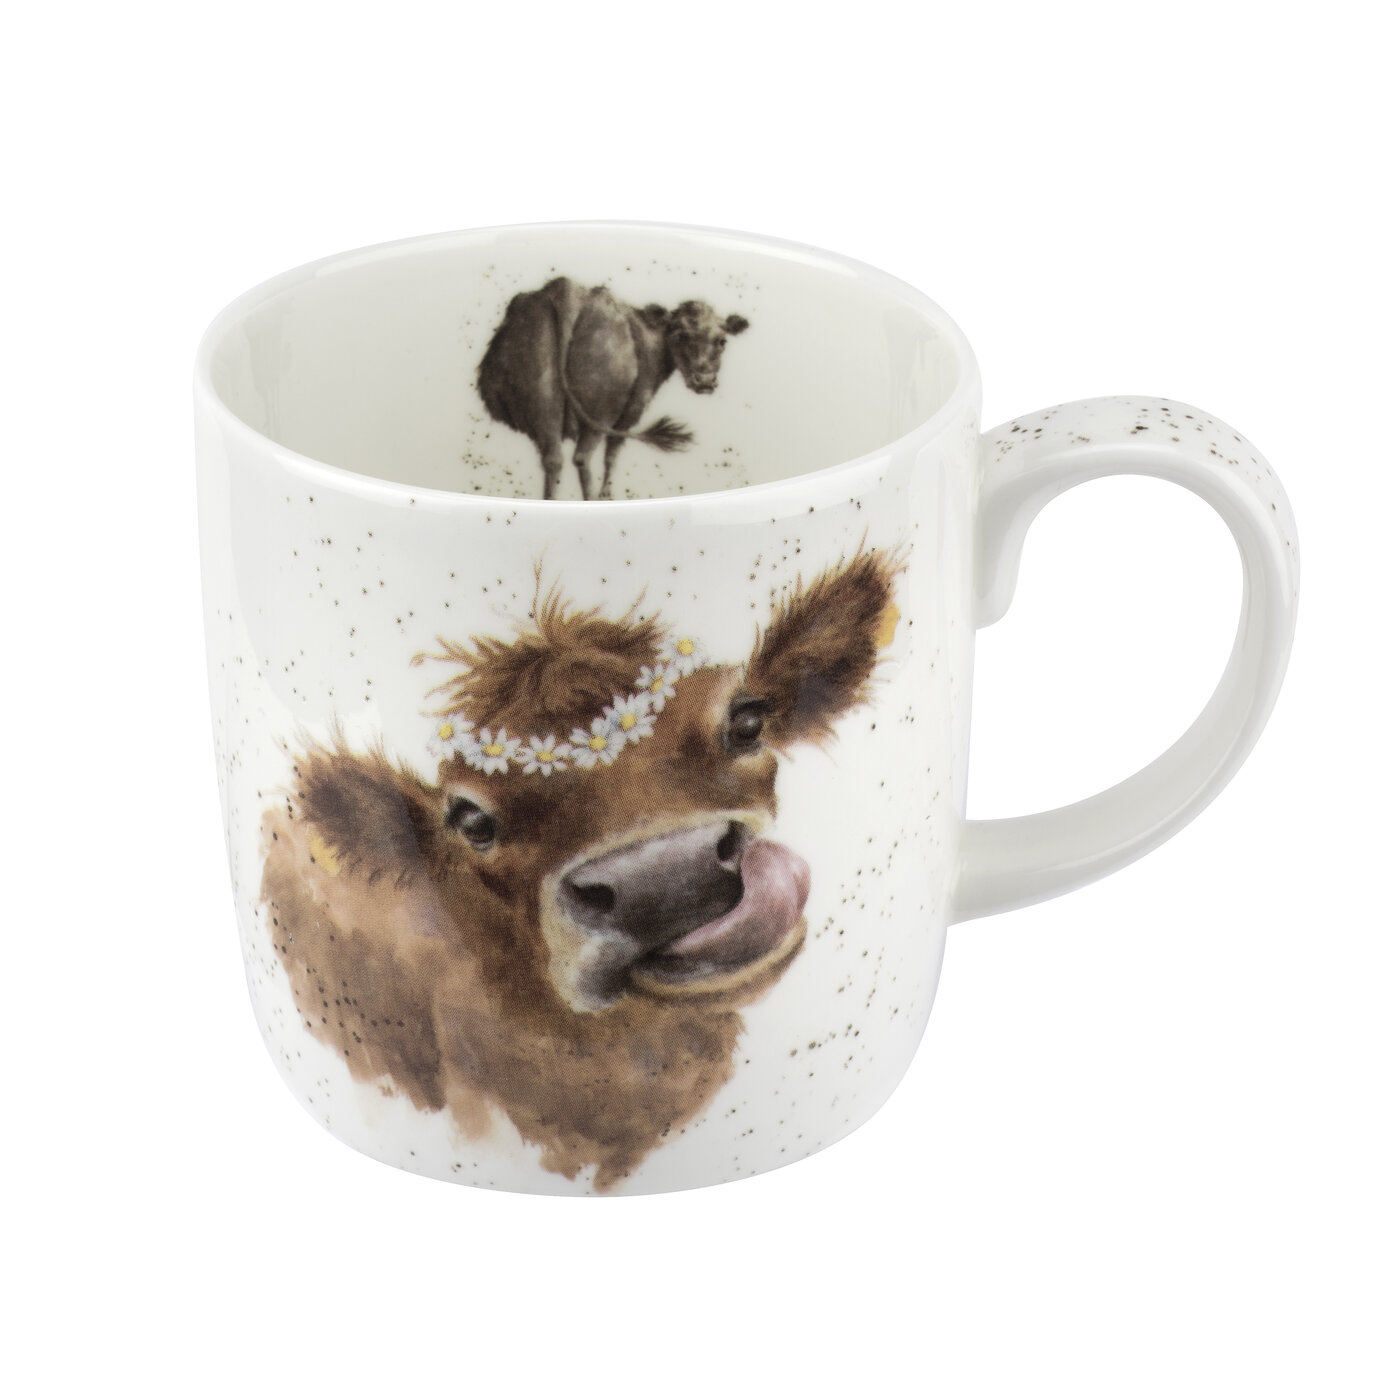 Wrendale Designs 14 Ounce Mug Mooo (Cow) image number 0